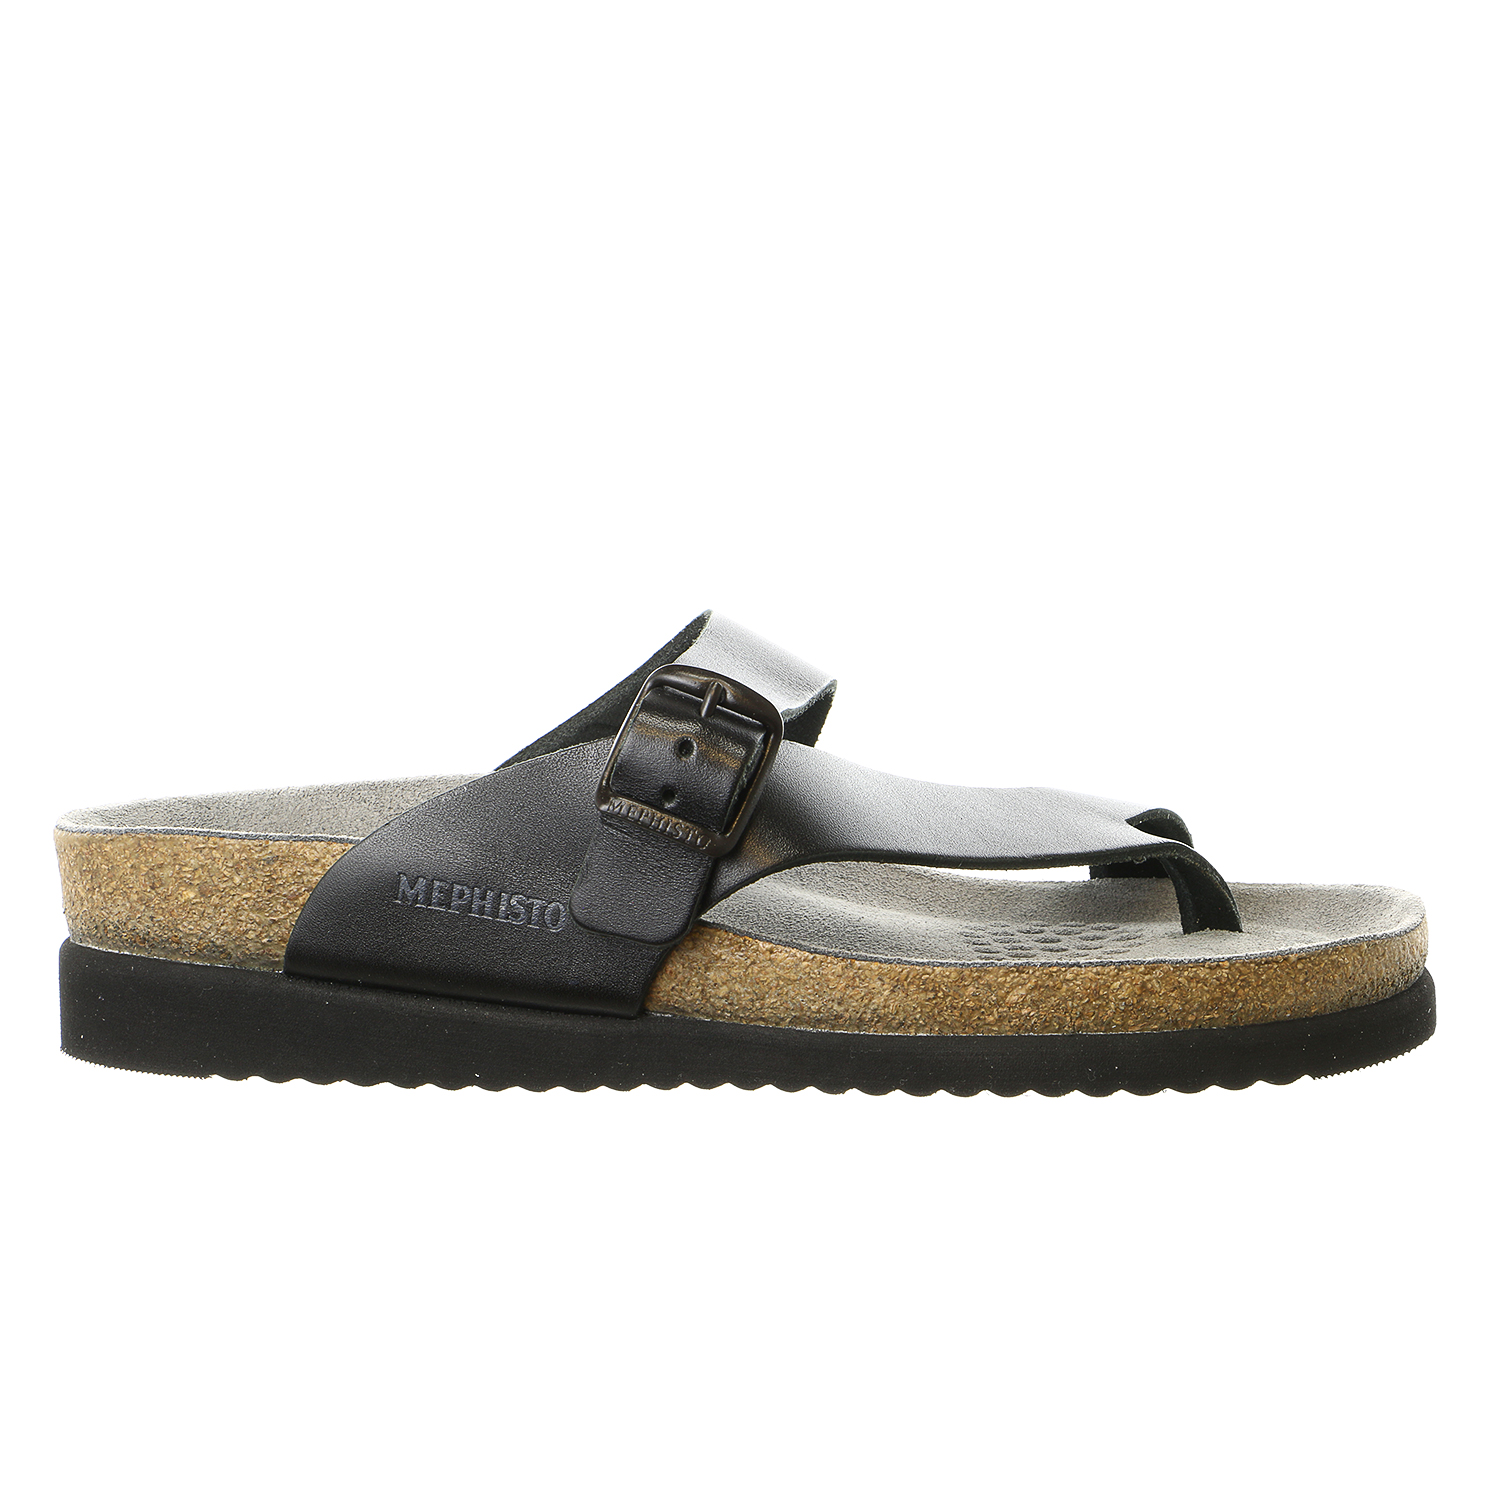 Mephisto Helen Adjustable Strap Thong Sandal Shoe - Womens